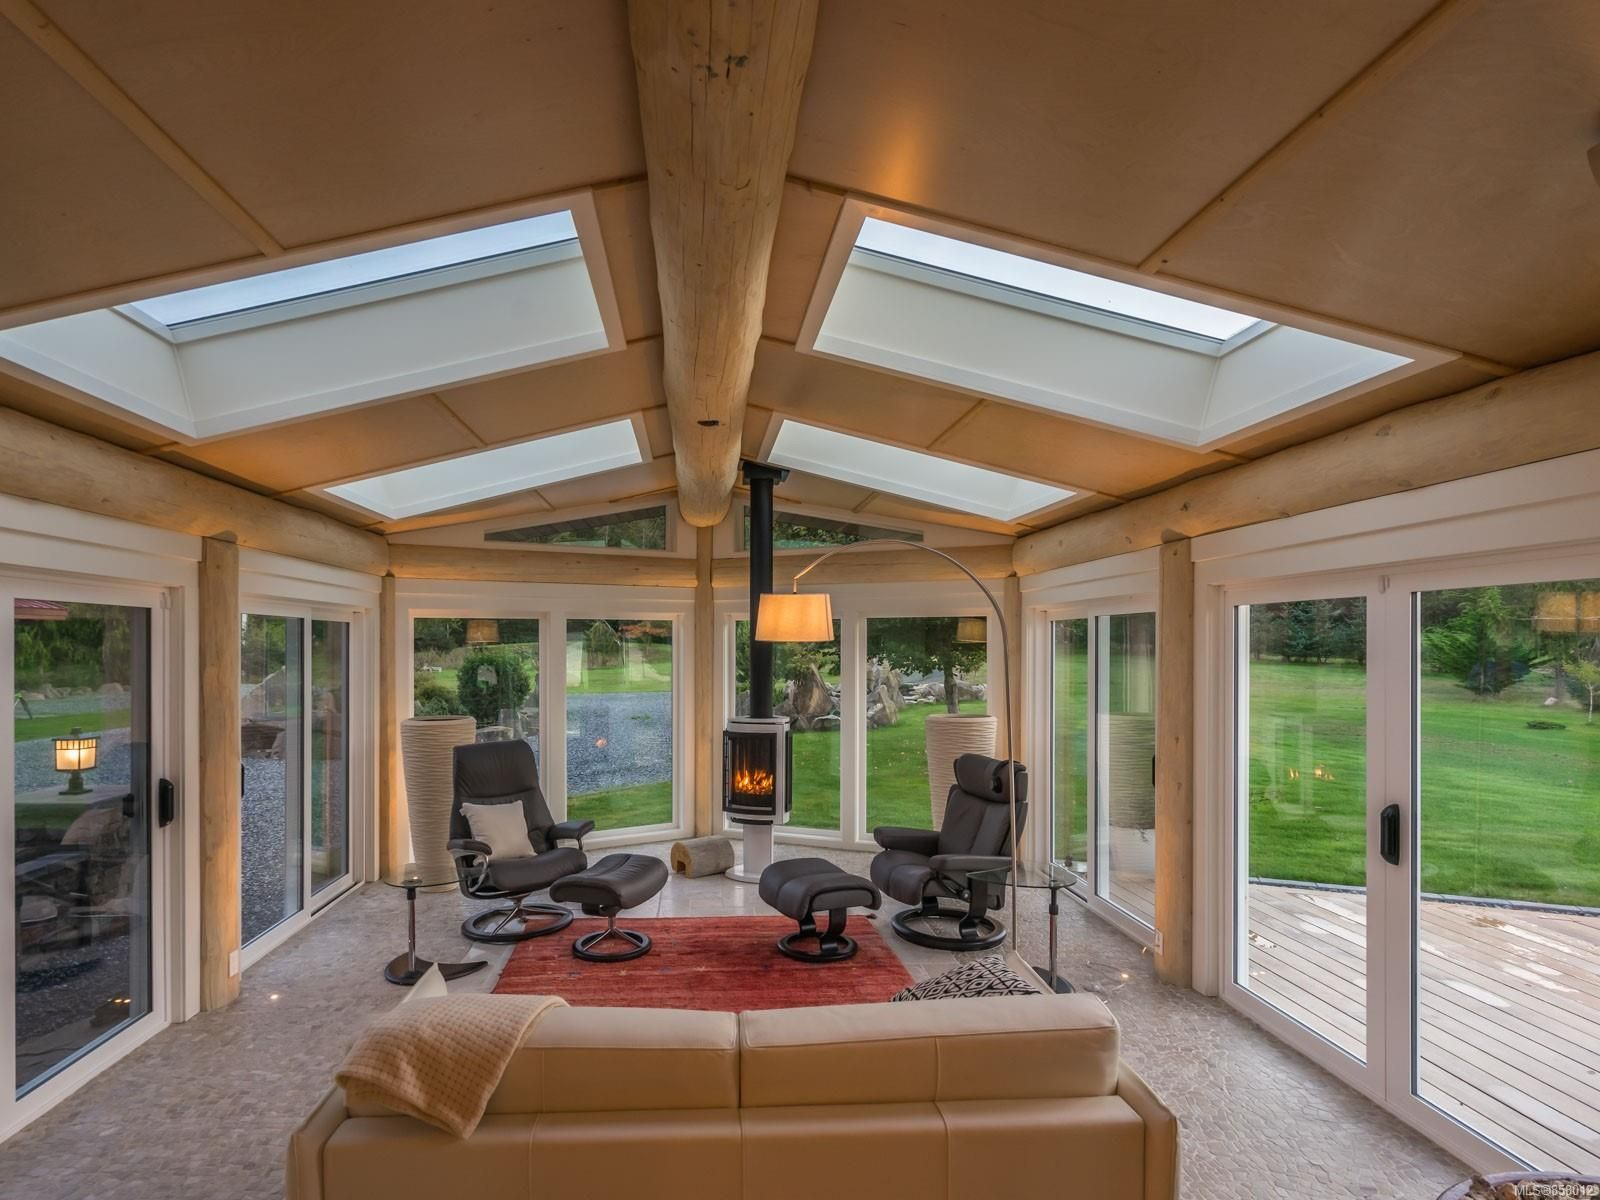 Photo 26: Photos: 6030 MINE Rd in : NI Port McNeill House for sale (North Island)  : MLS®# 858012